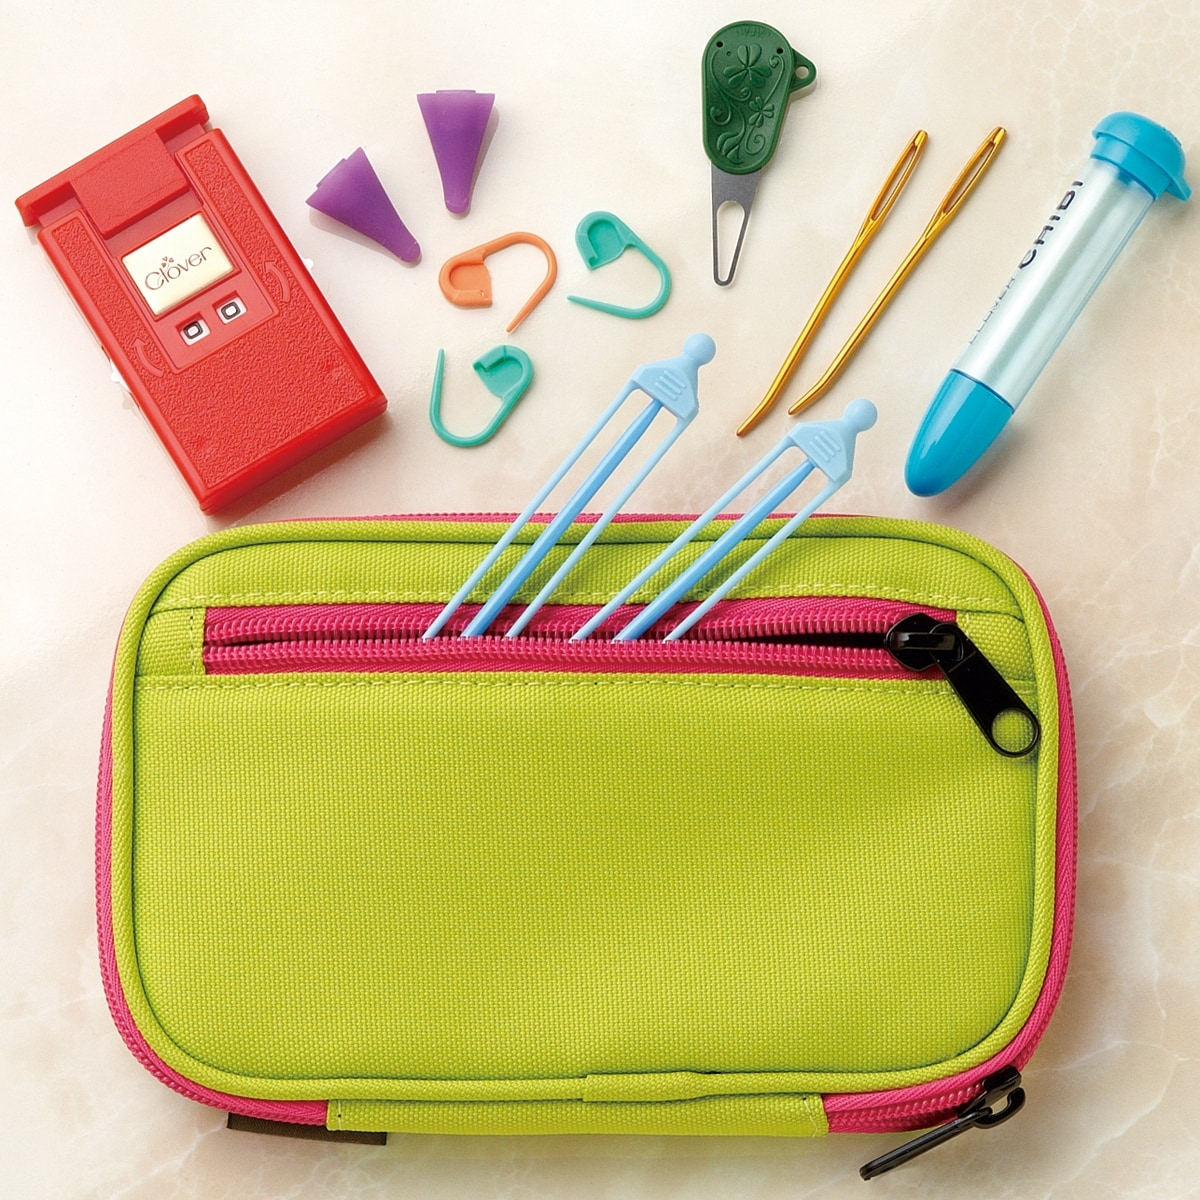 Shop Clover 3673 Amour Crochet Hook Set With Zippered Case Size 10